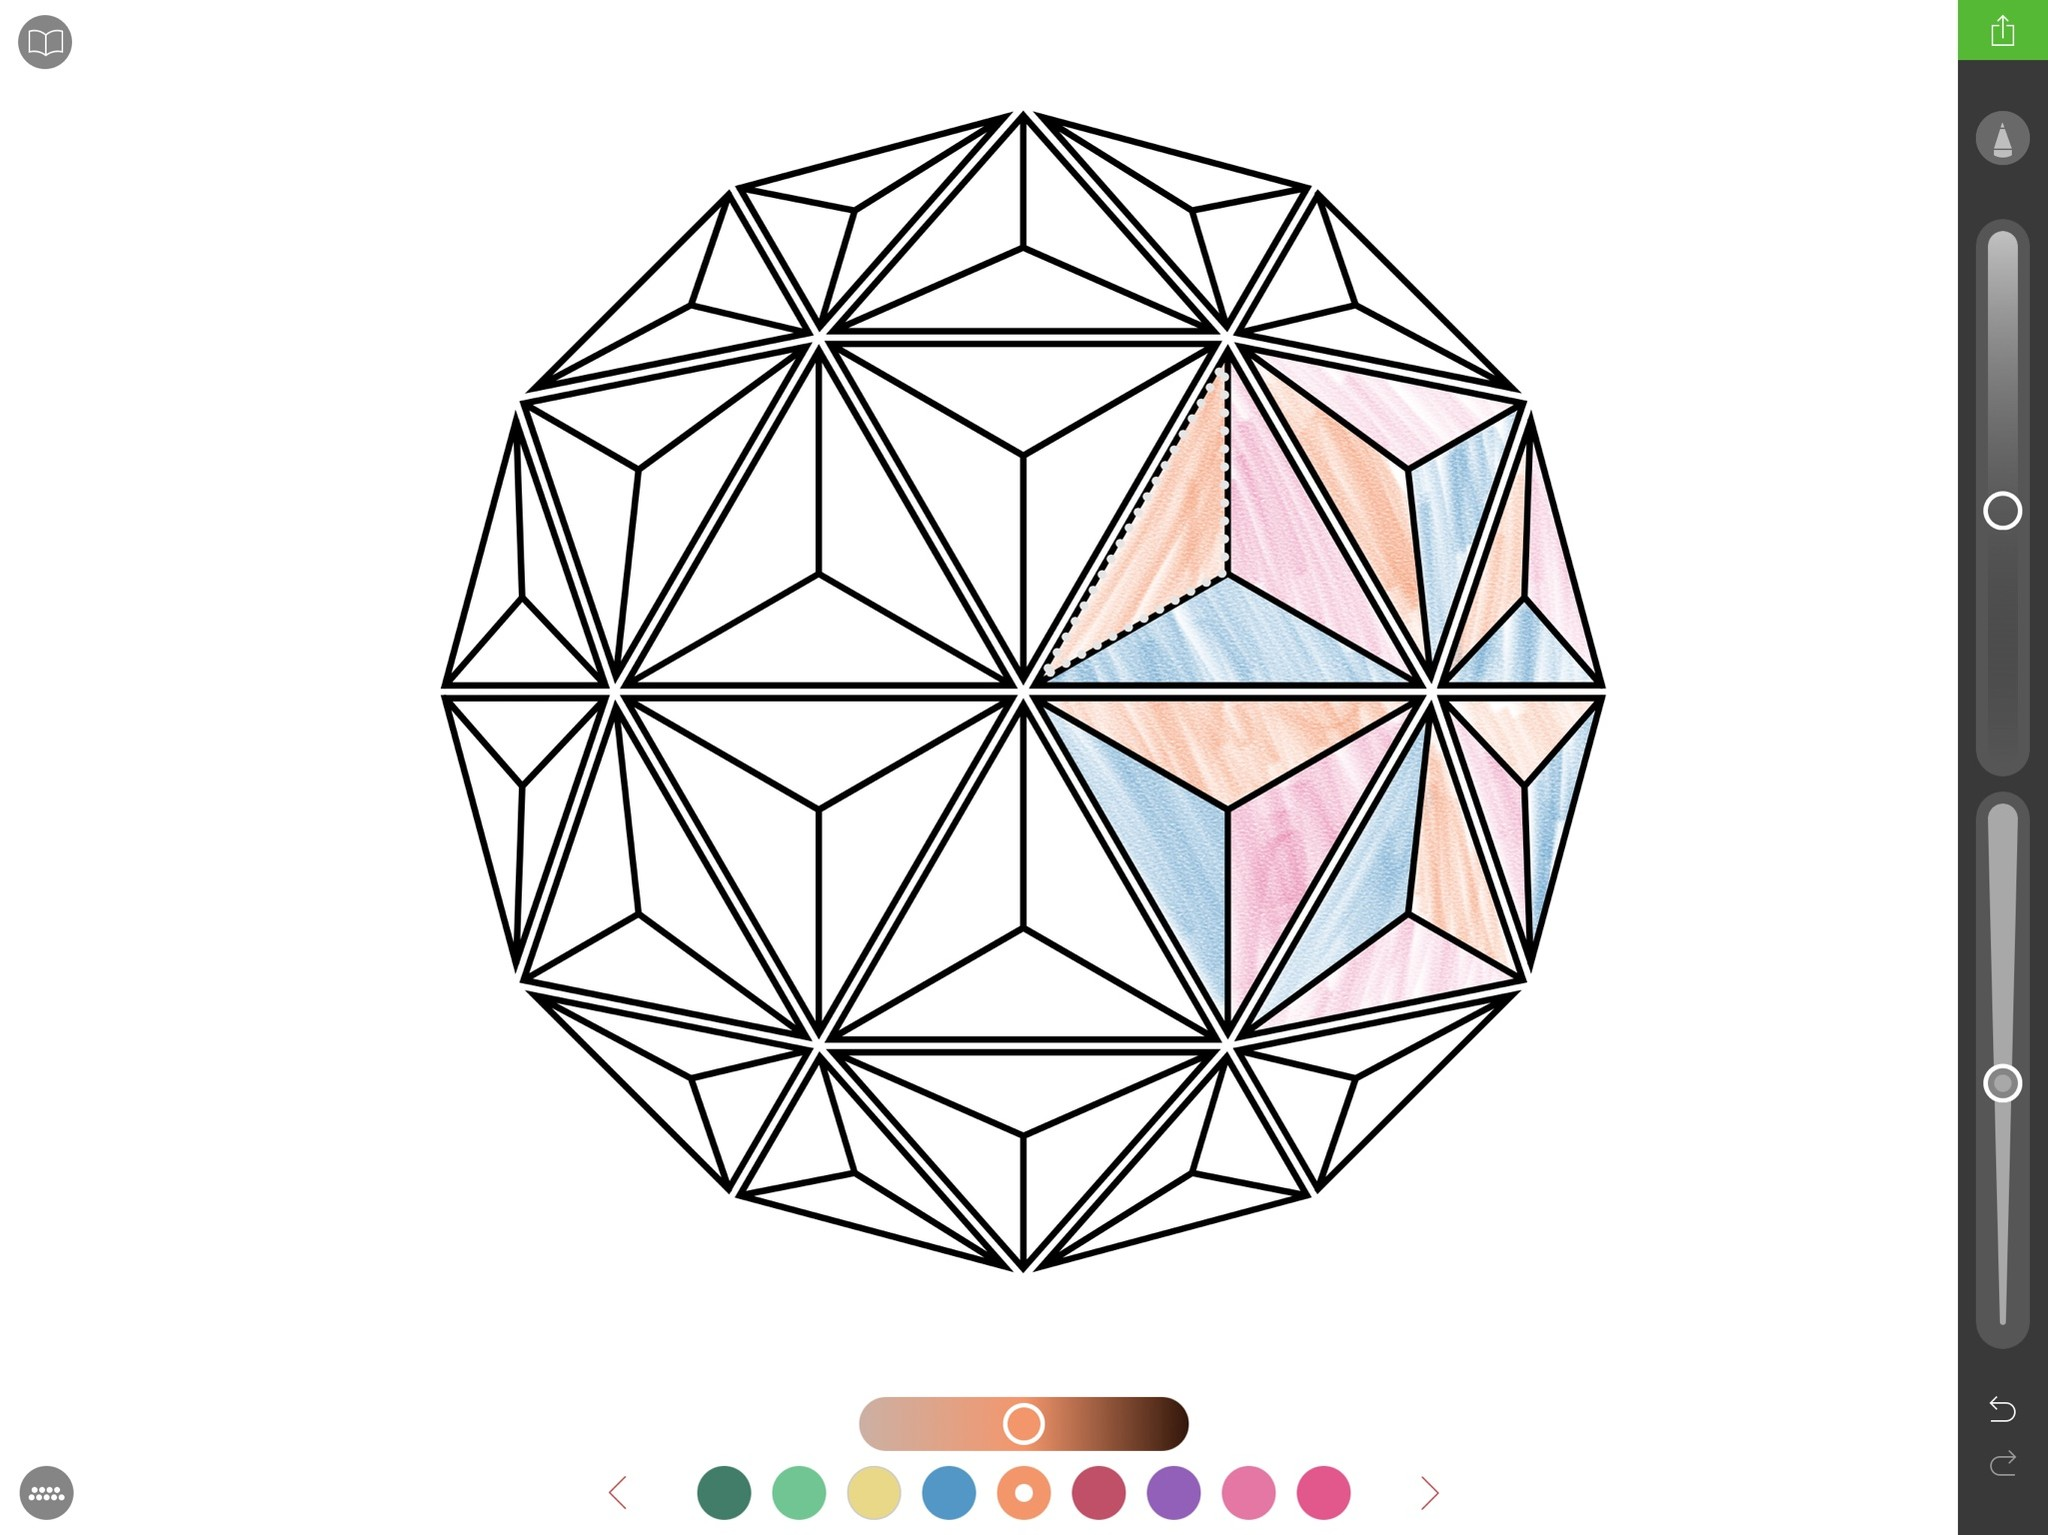 Coloring book for notability -  Pigment Adult Coloring Books